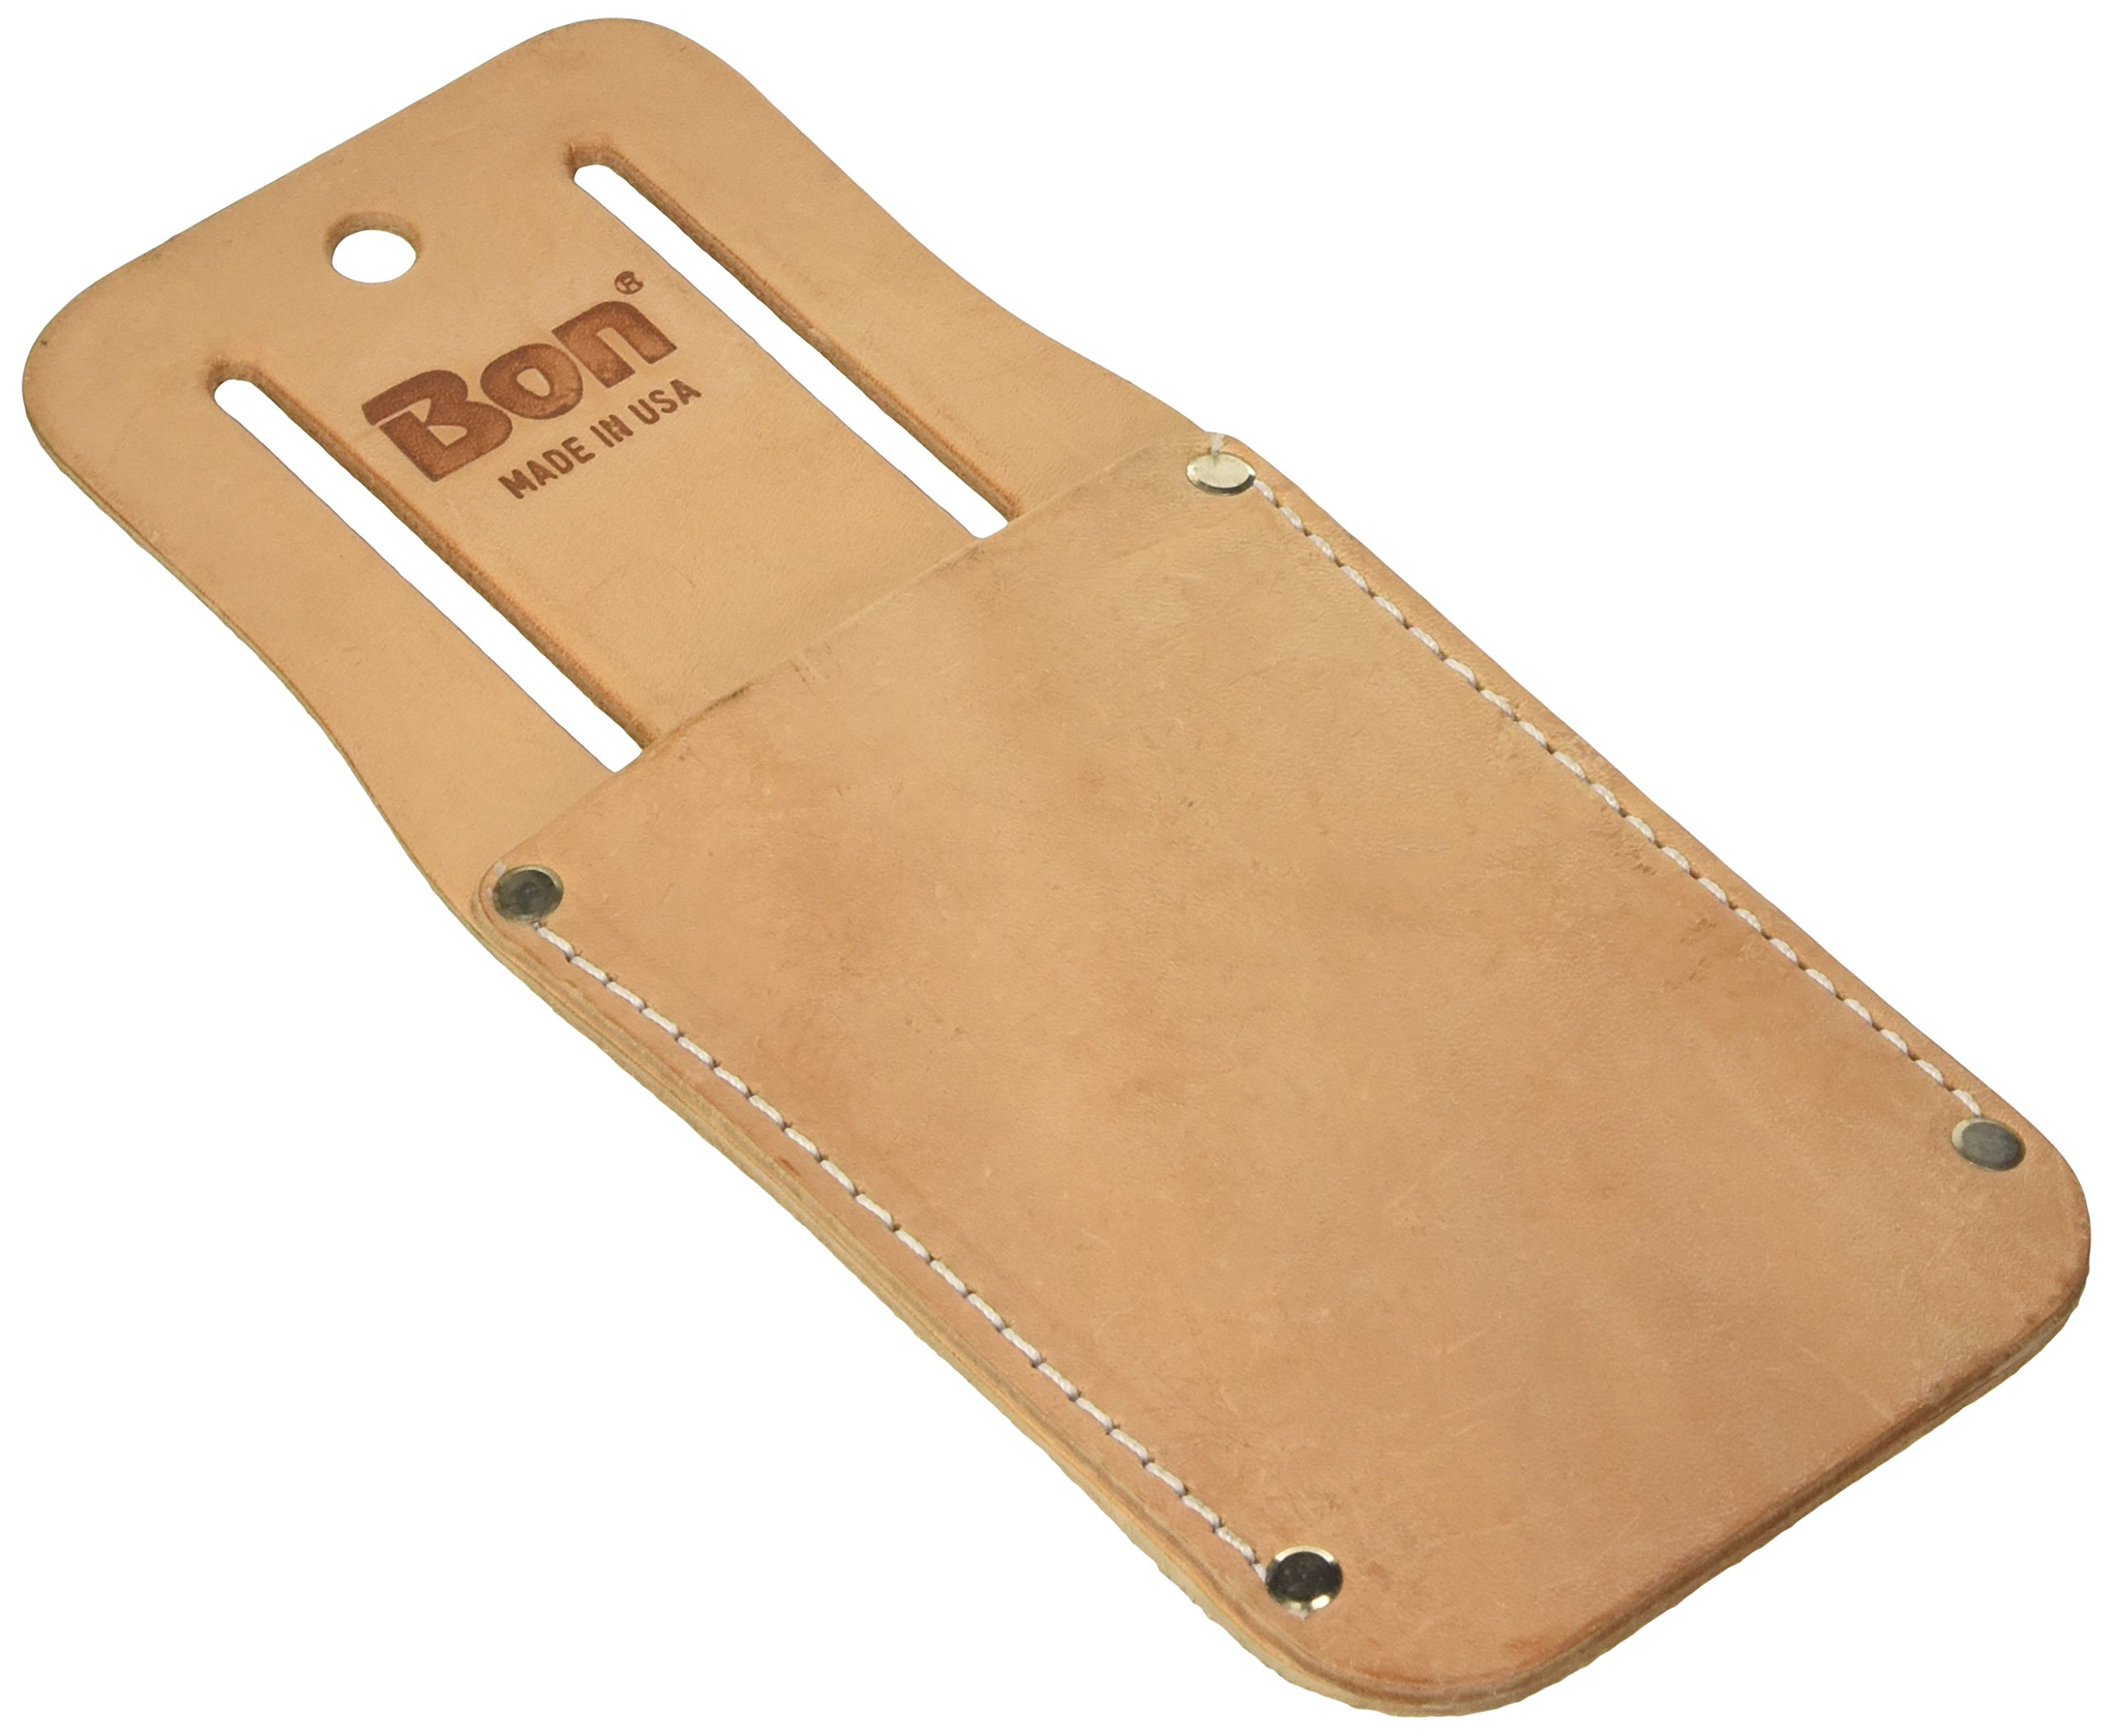 Bon 84-429 Archaeologist Leather Trowel Holster